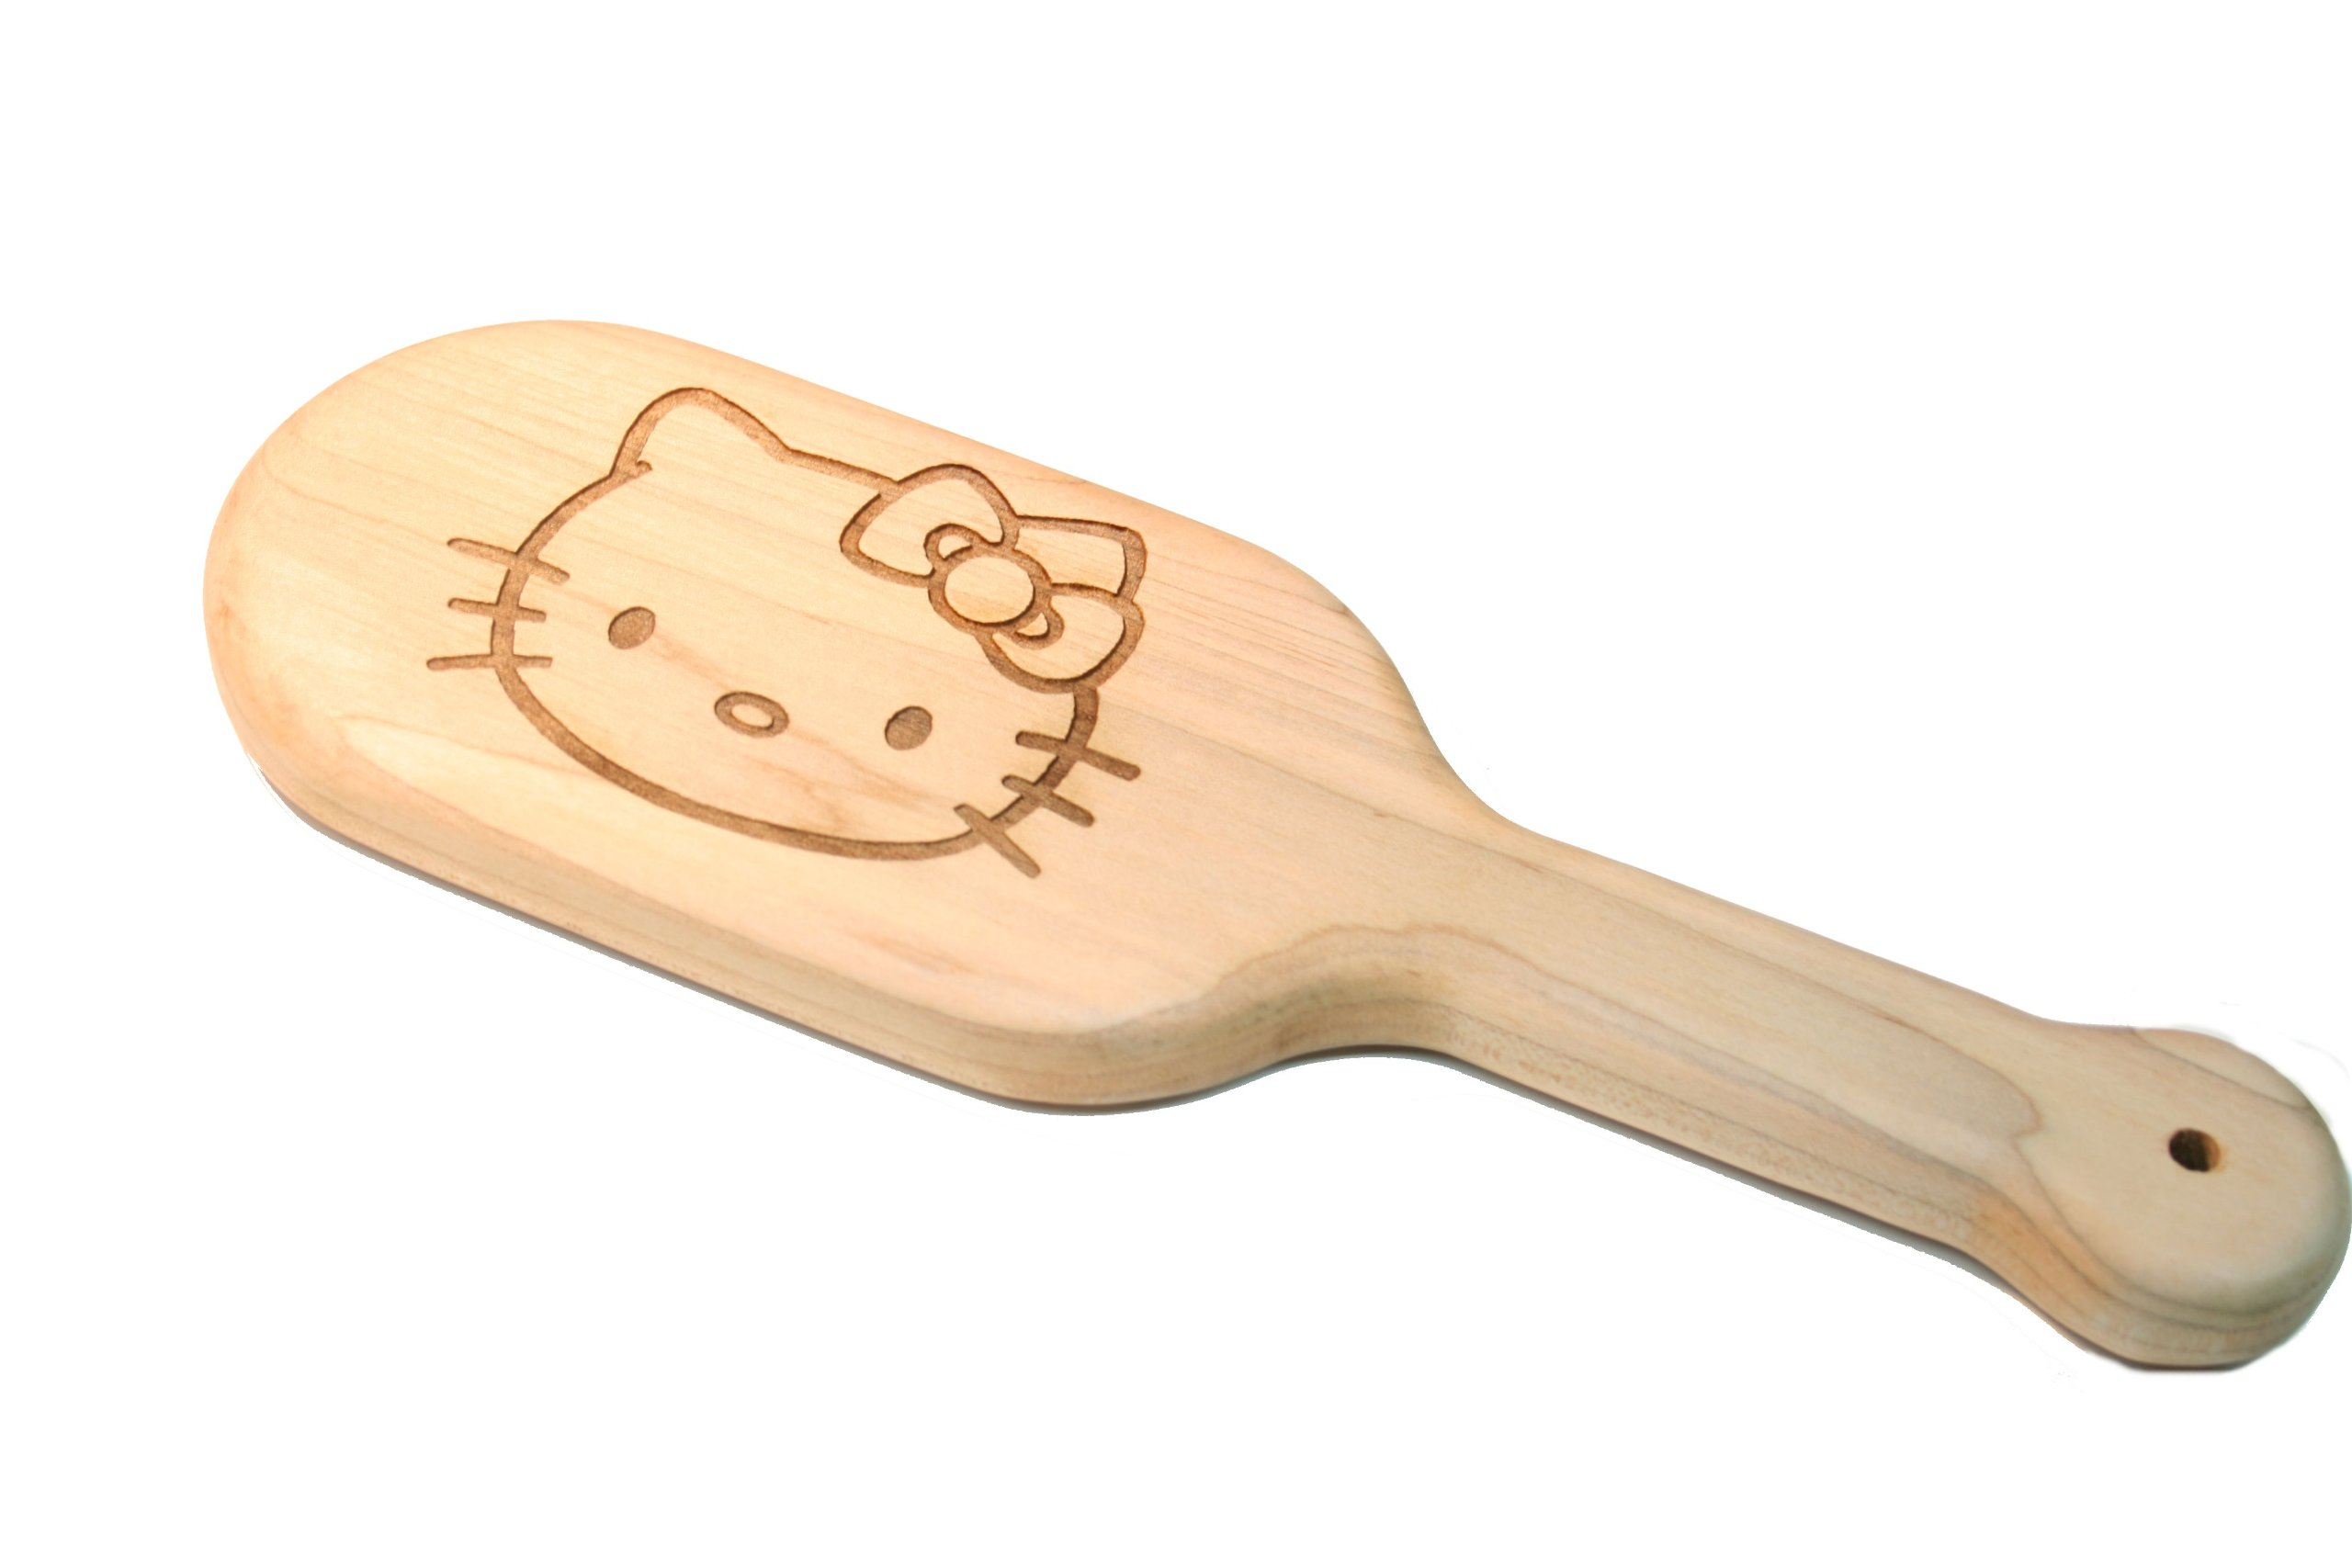 Laser Engraved Kitty BDSM Spanking Paddle in Solid Maple Fetish BDSM Sex Gear by The Kink Factory USA